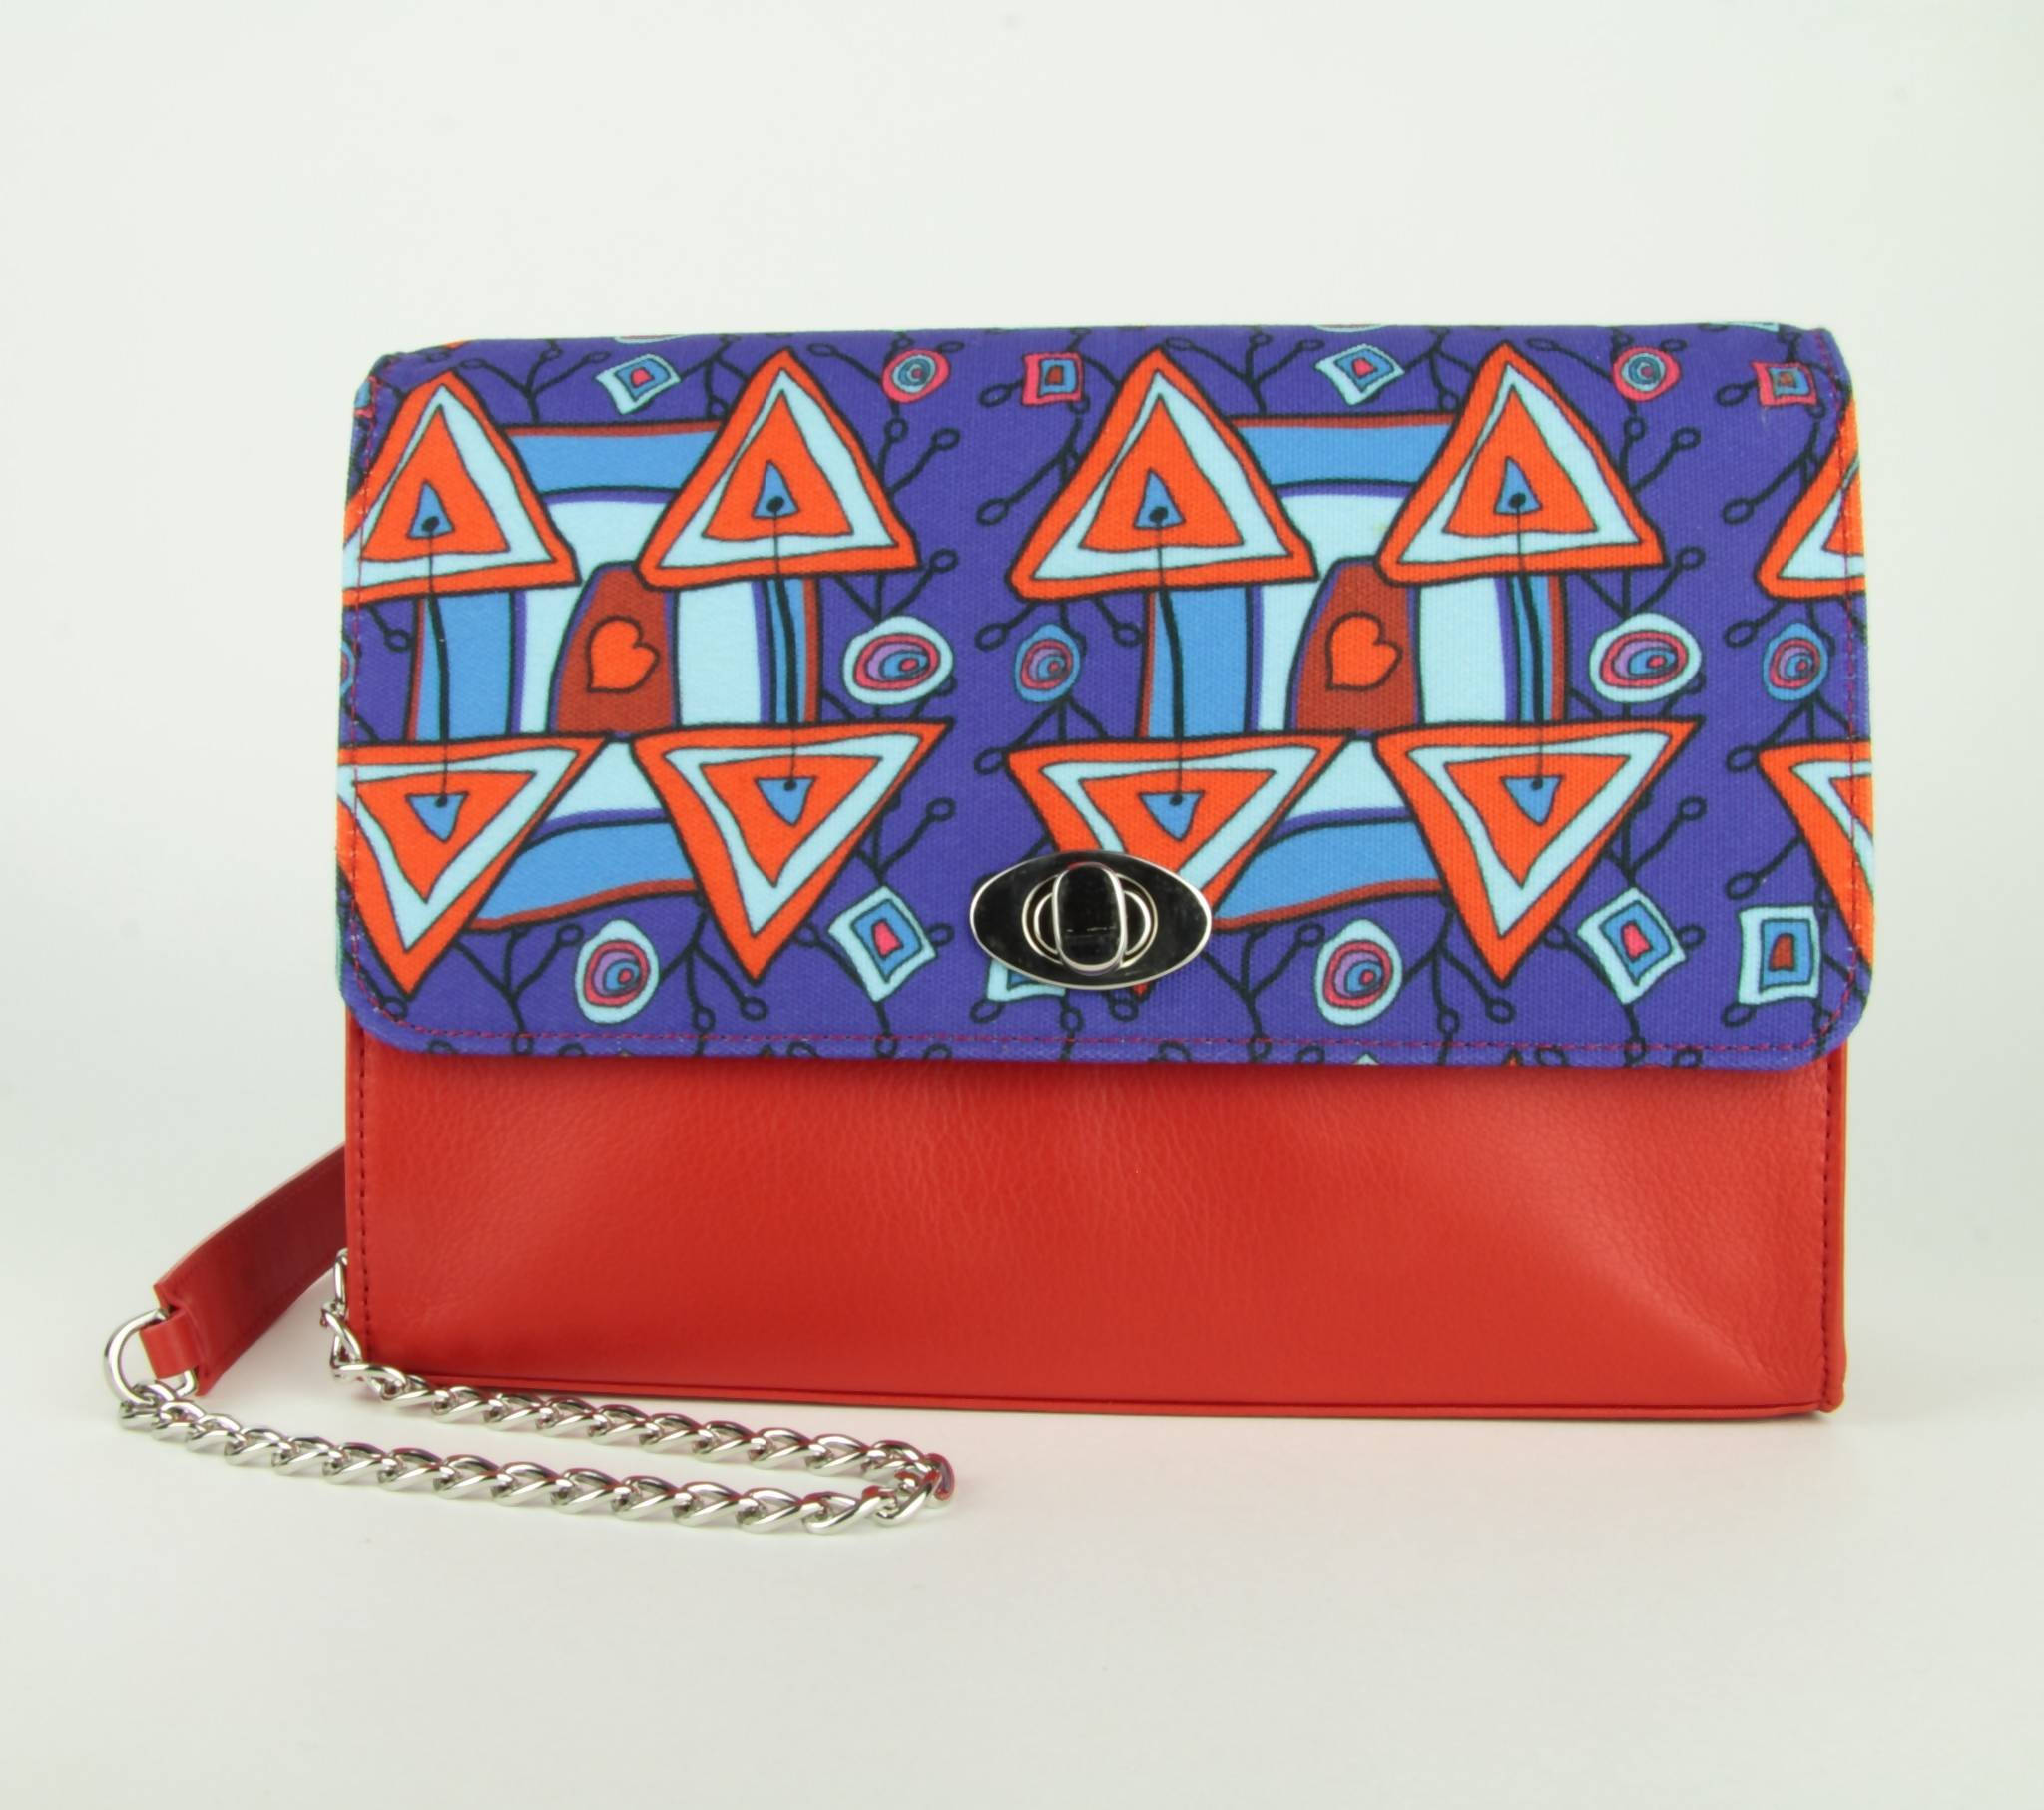 Clutch Xaverine red/blue